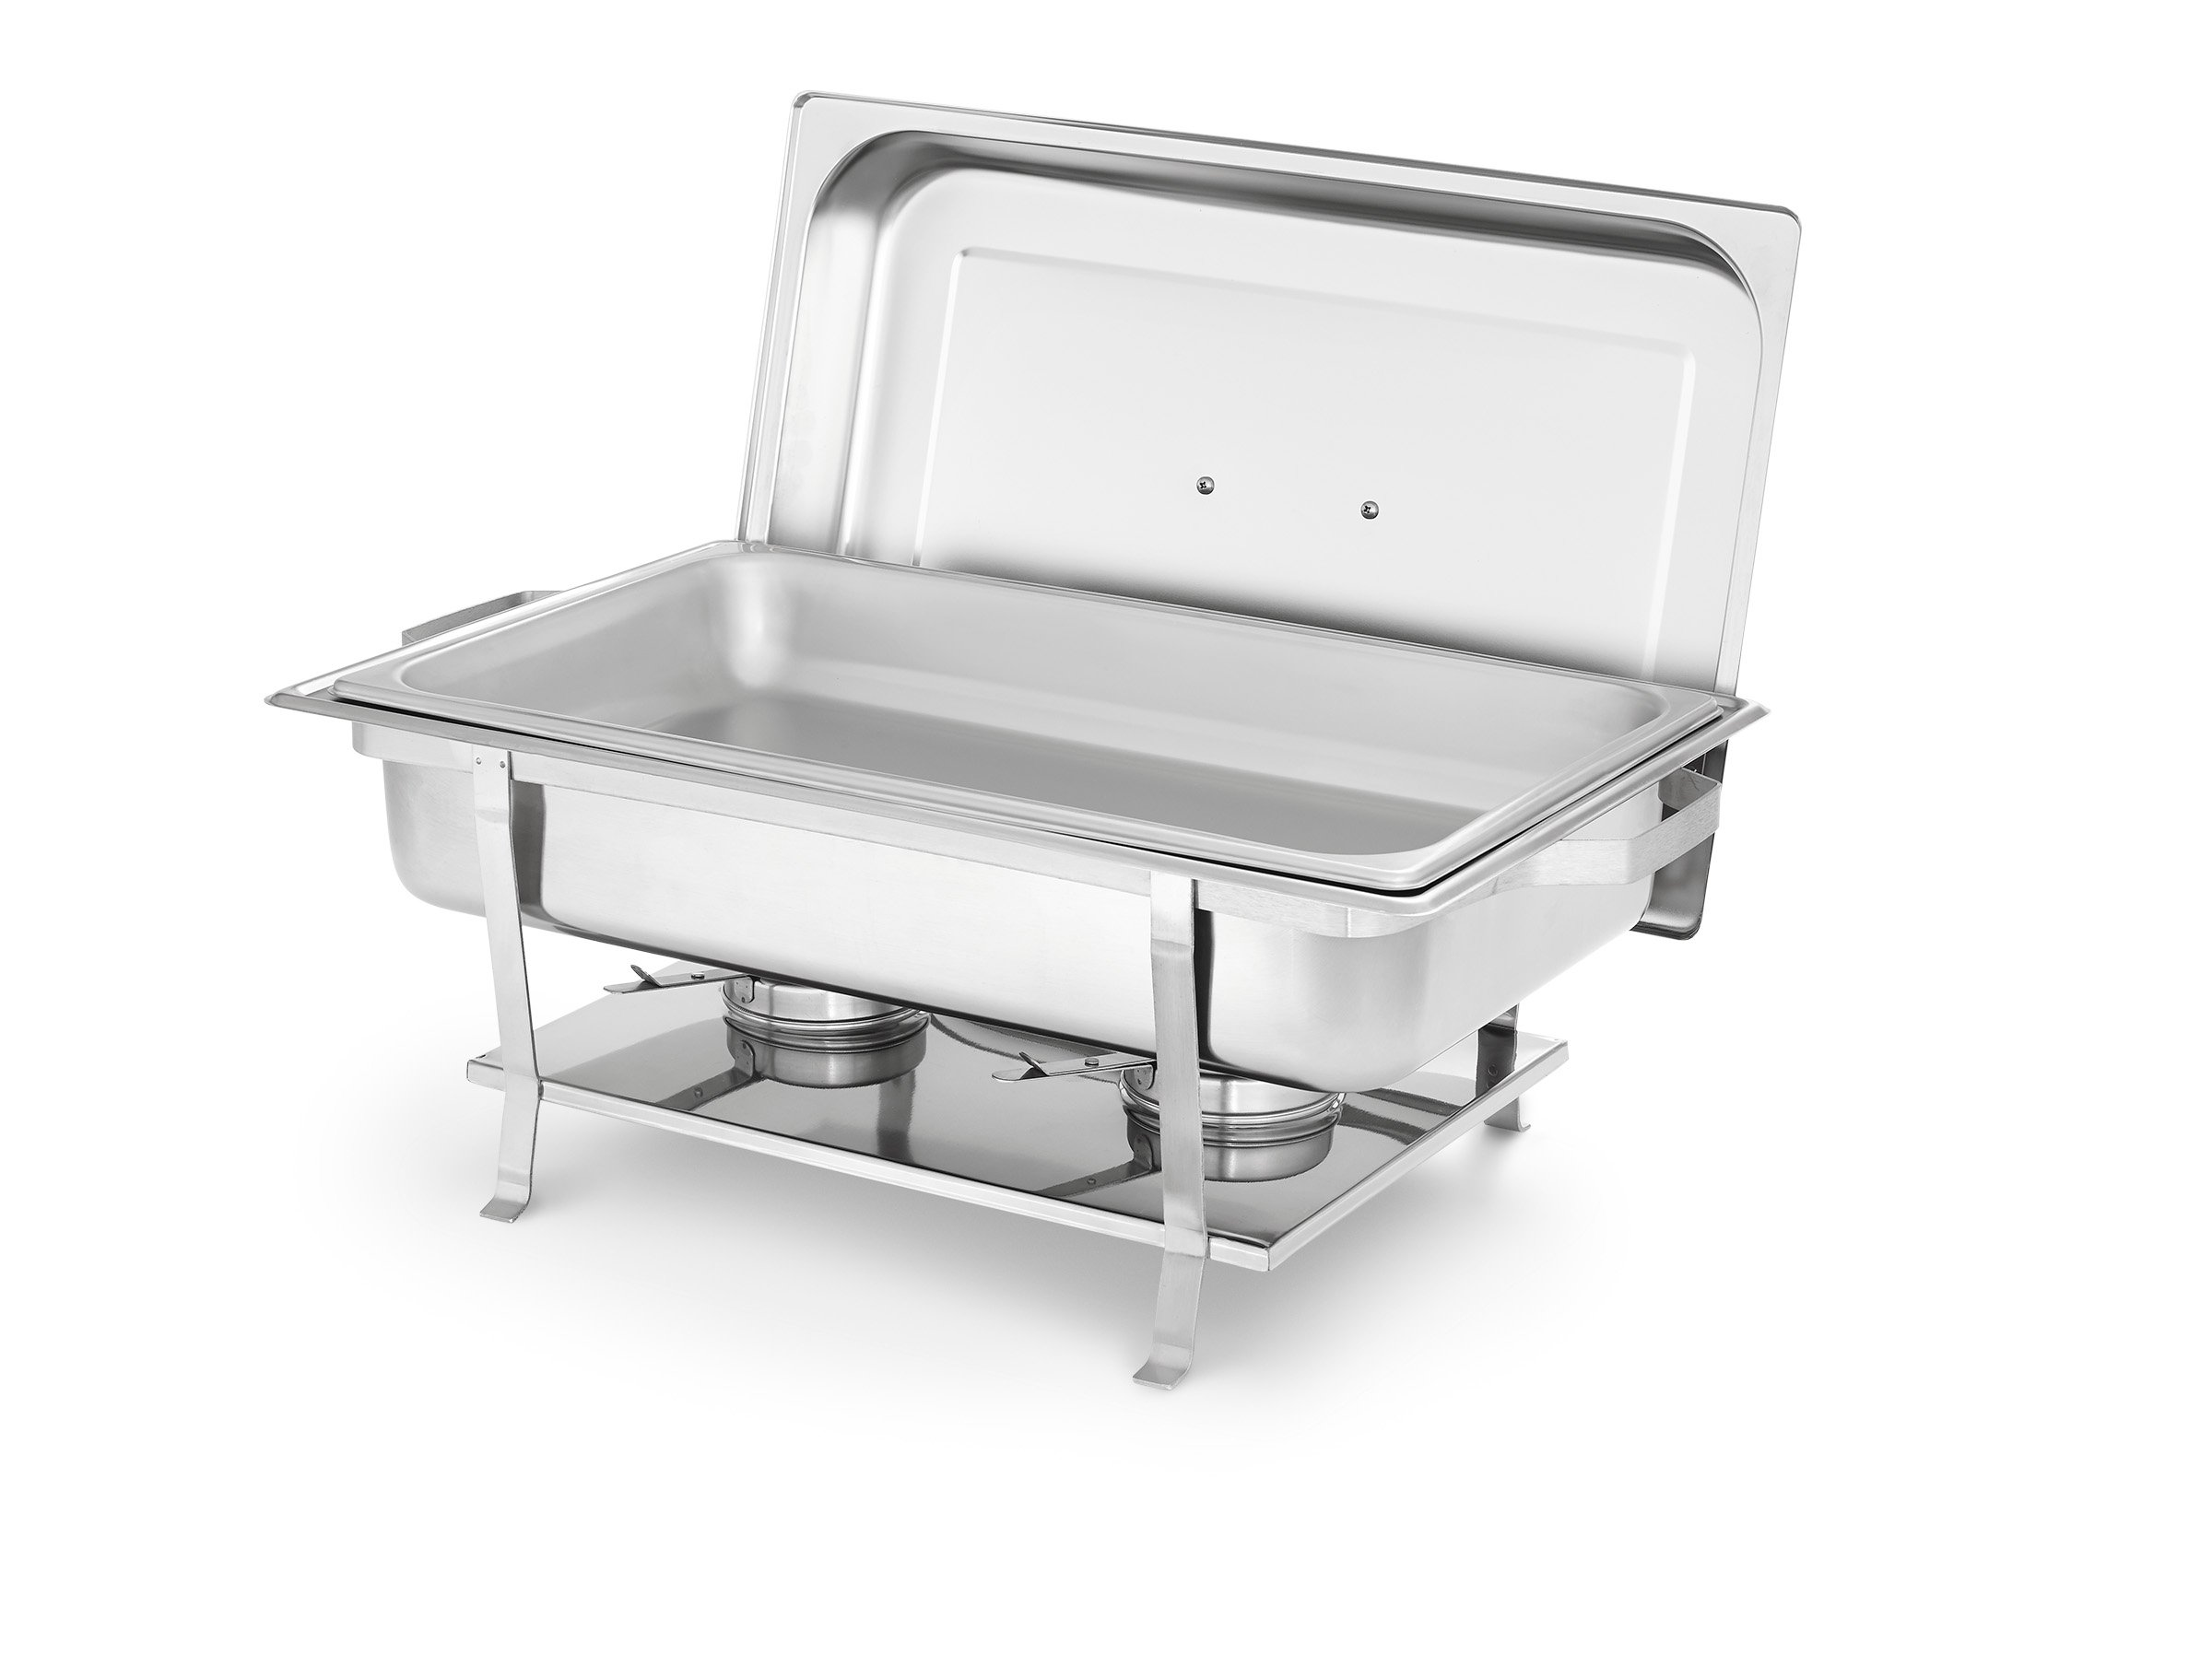 Artisan Stainless Steel Rectangular Buffet Chafer with Welded Frame, 8-Quart Capacity